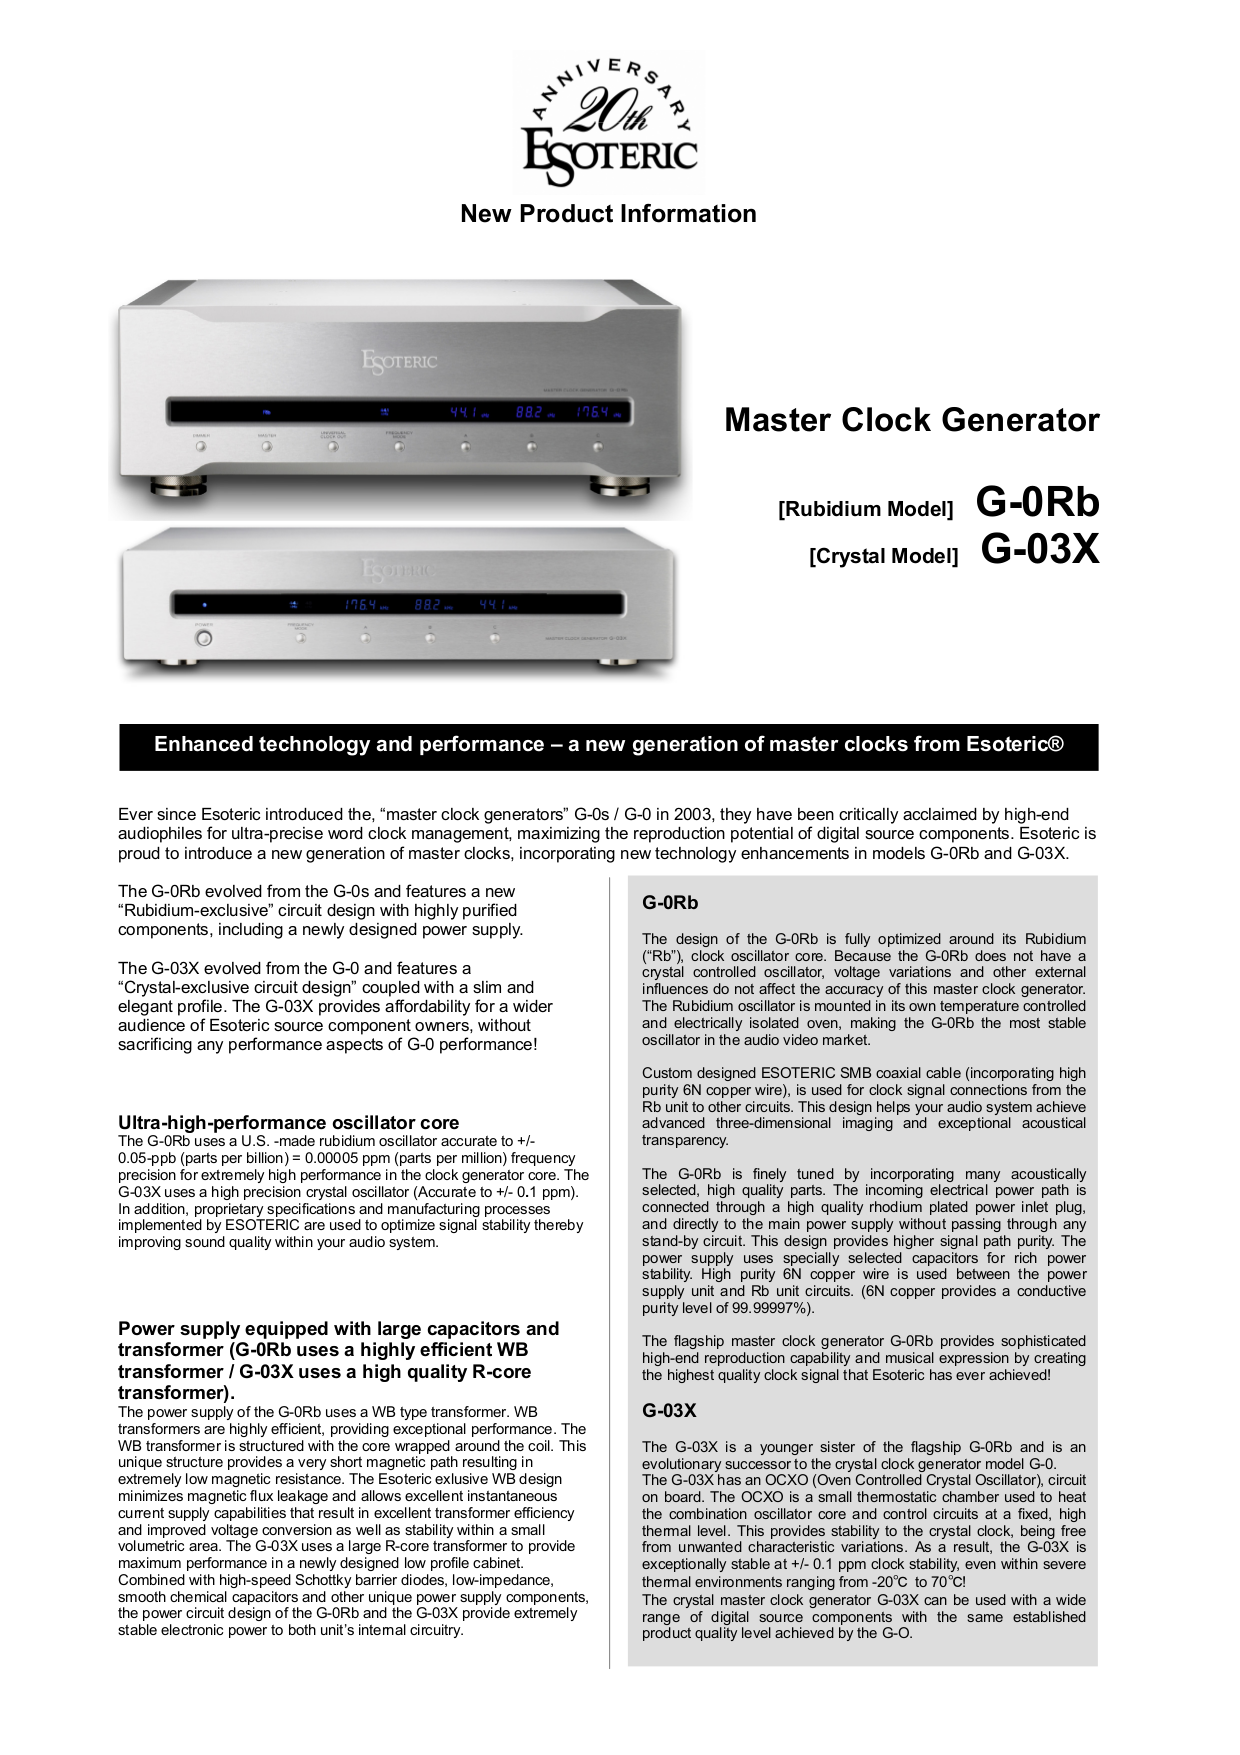 pdf for Teac Other G-0Rb Master clocks manual